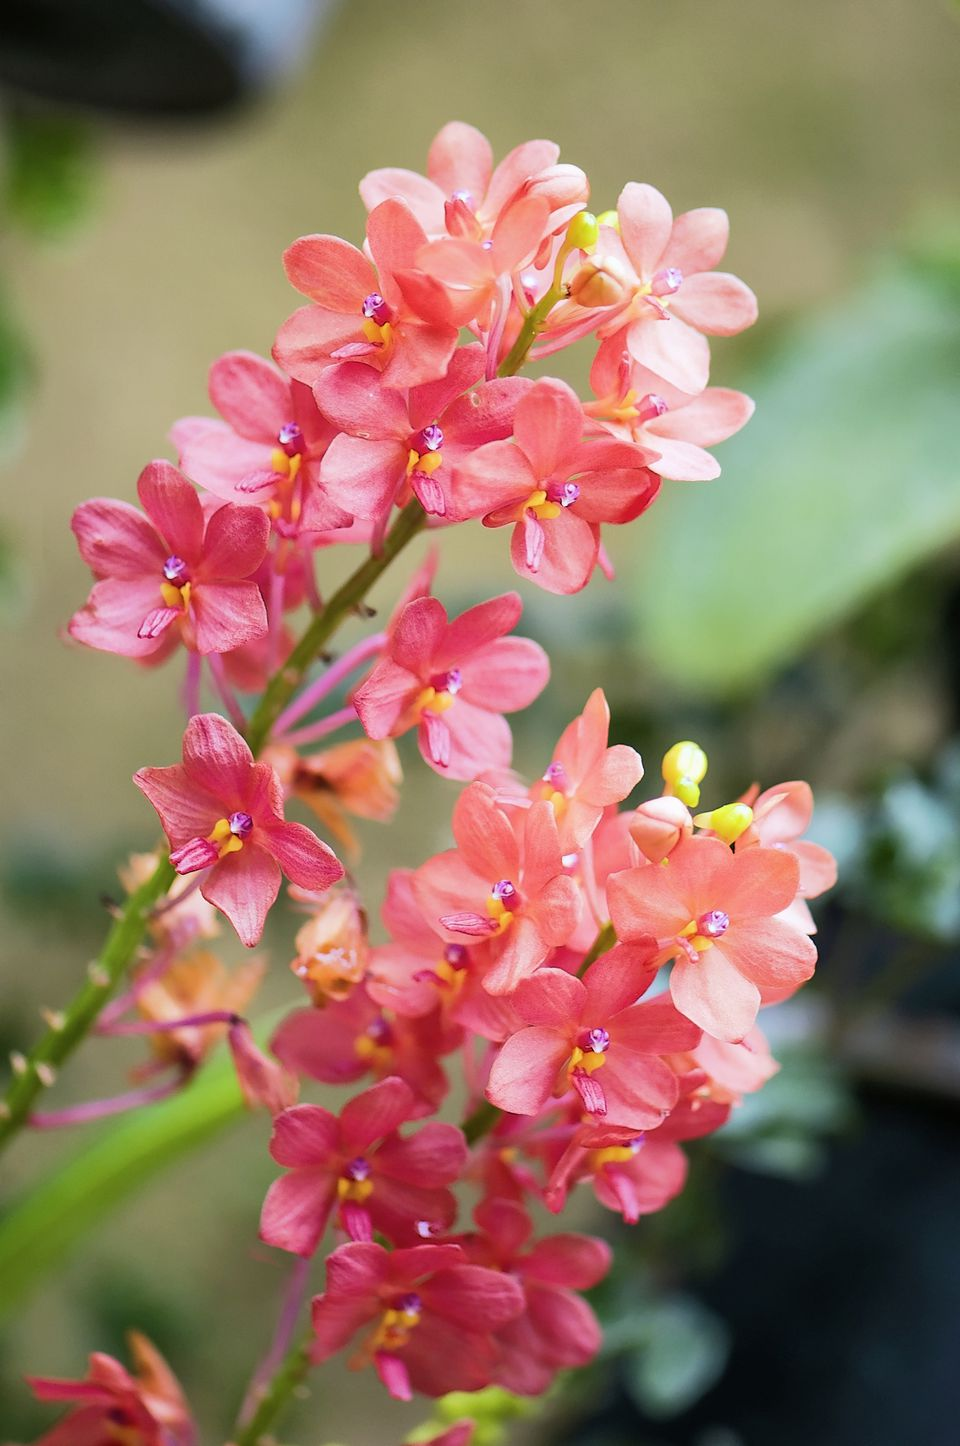 Red ascocentrum orchid